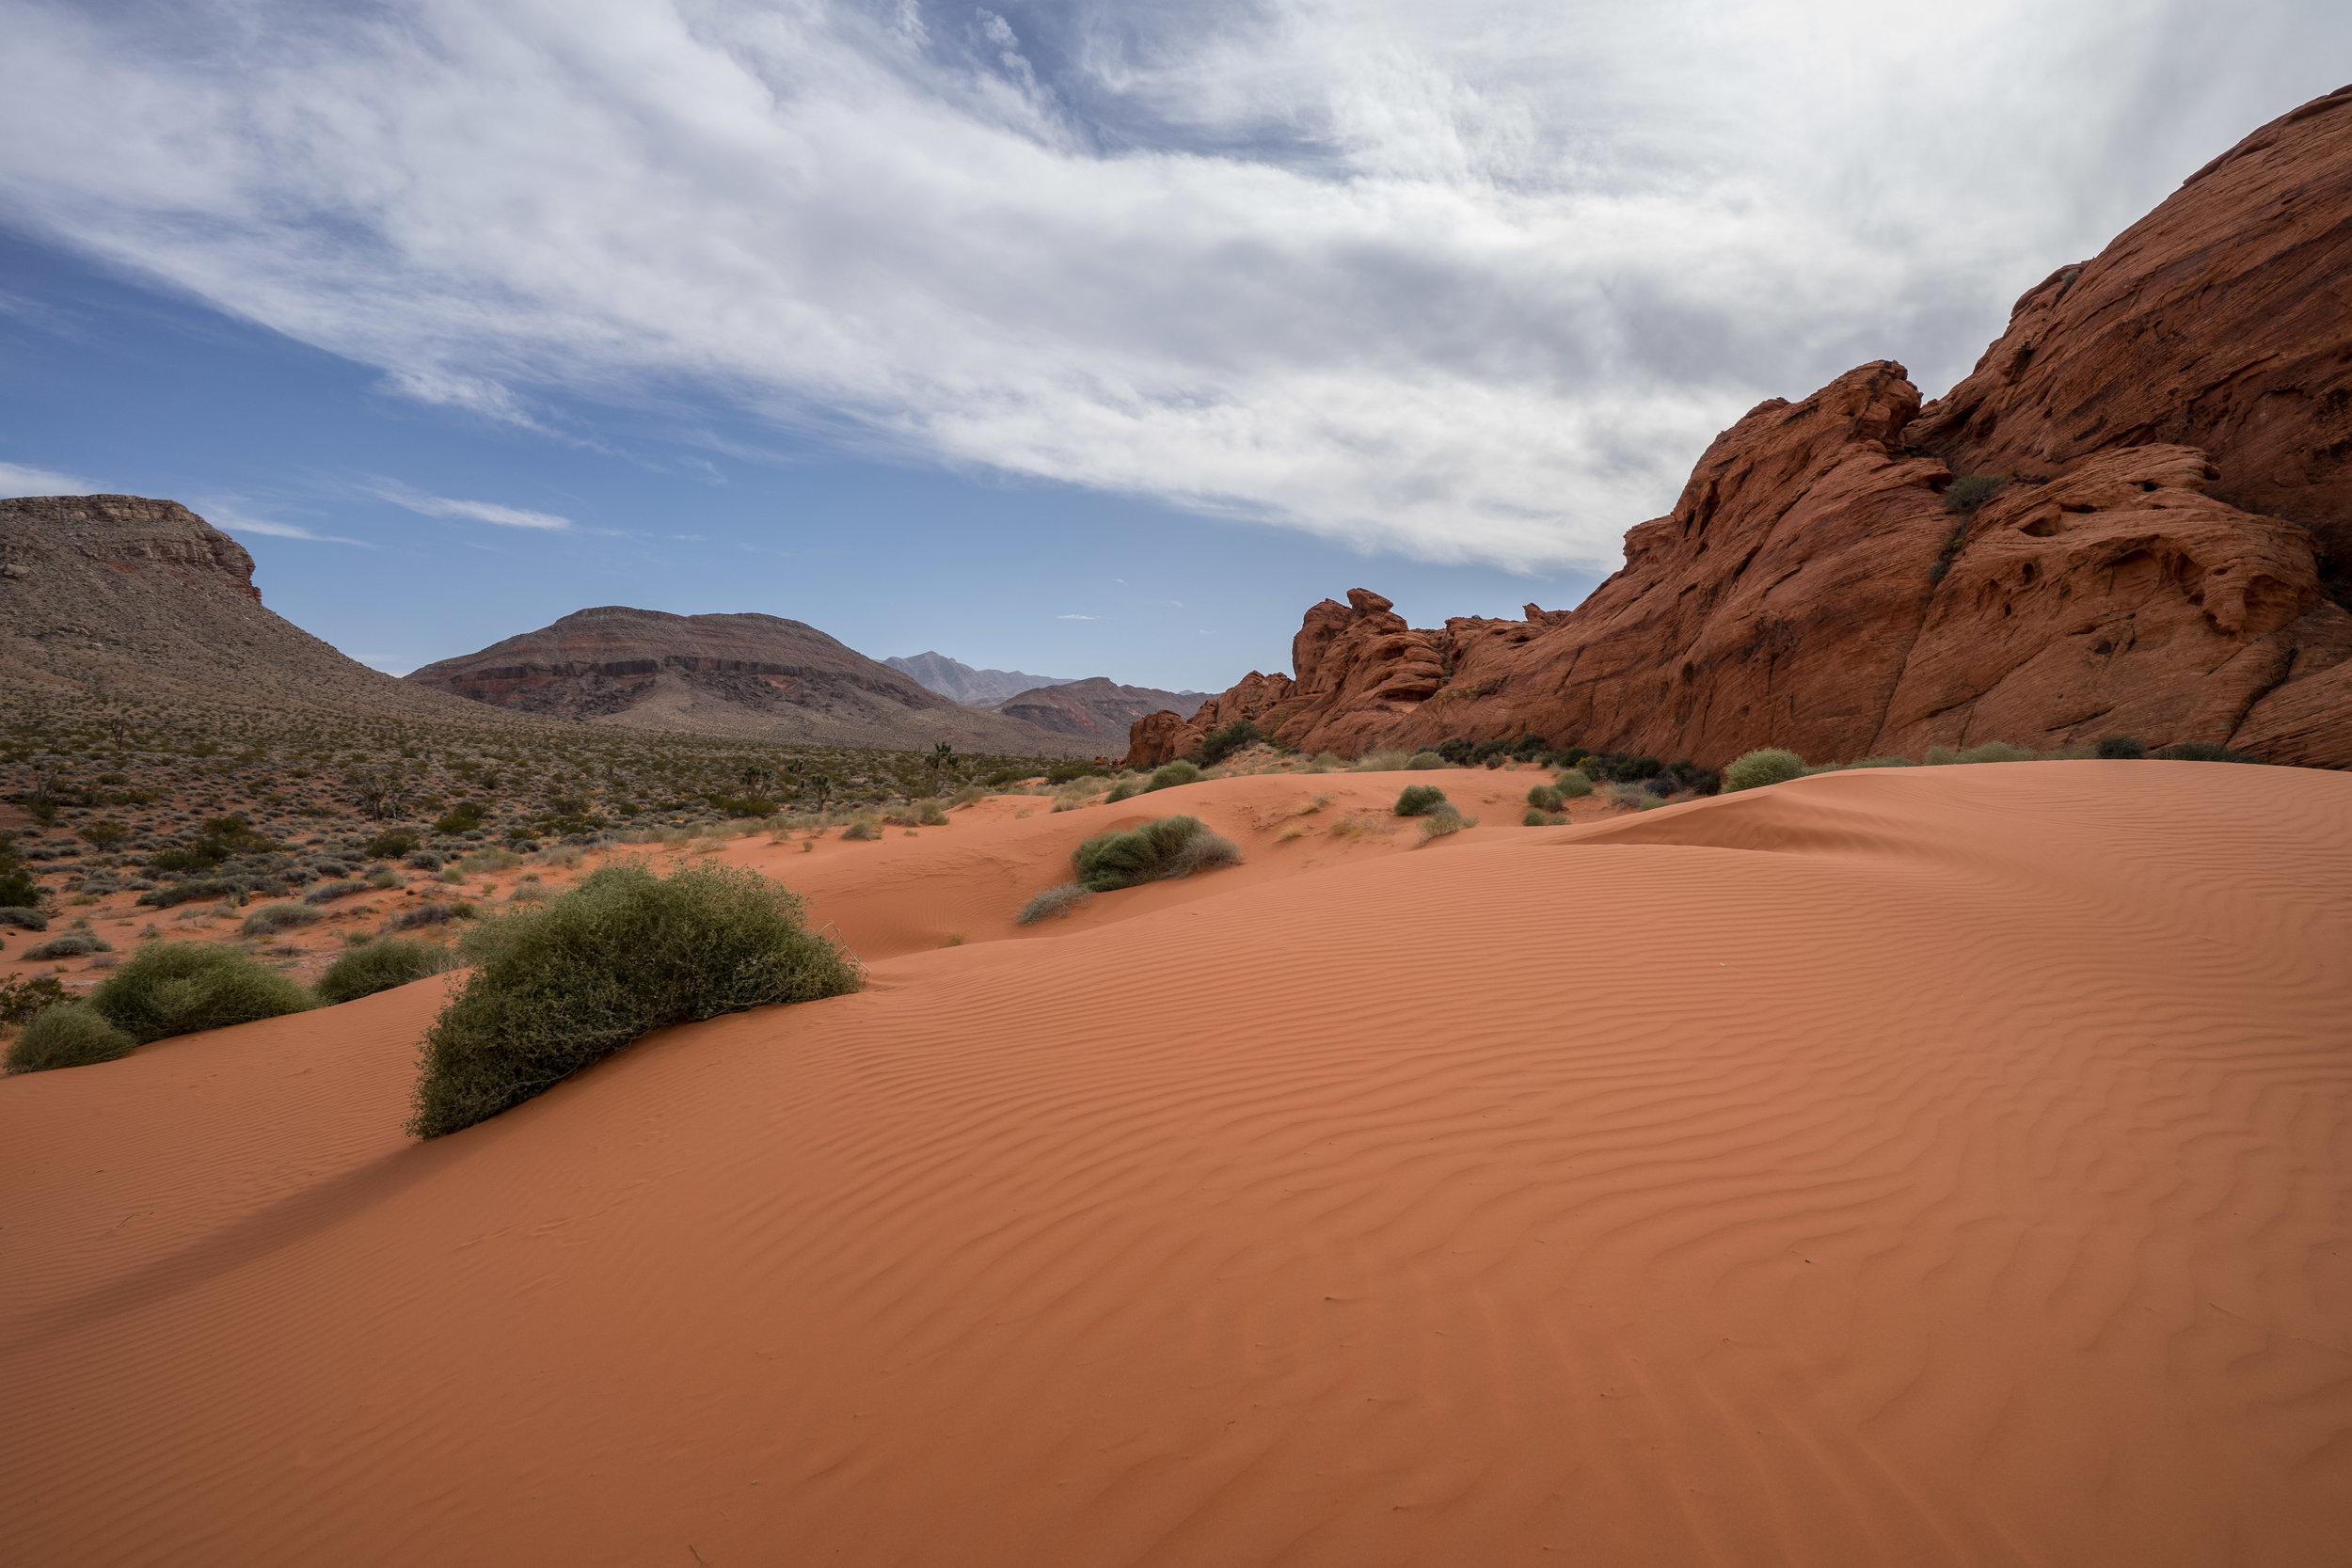 - Walking across the Mud Wash dunes was yet another wonderful experience in Gold Butte. This place truly has something for everyone. In the distance, the north slopes of the Virgin mountains host relict forests from the last Ice Age.